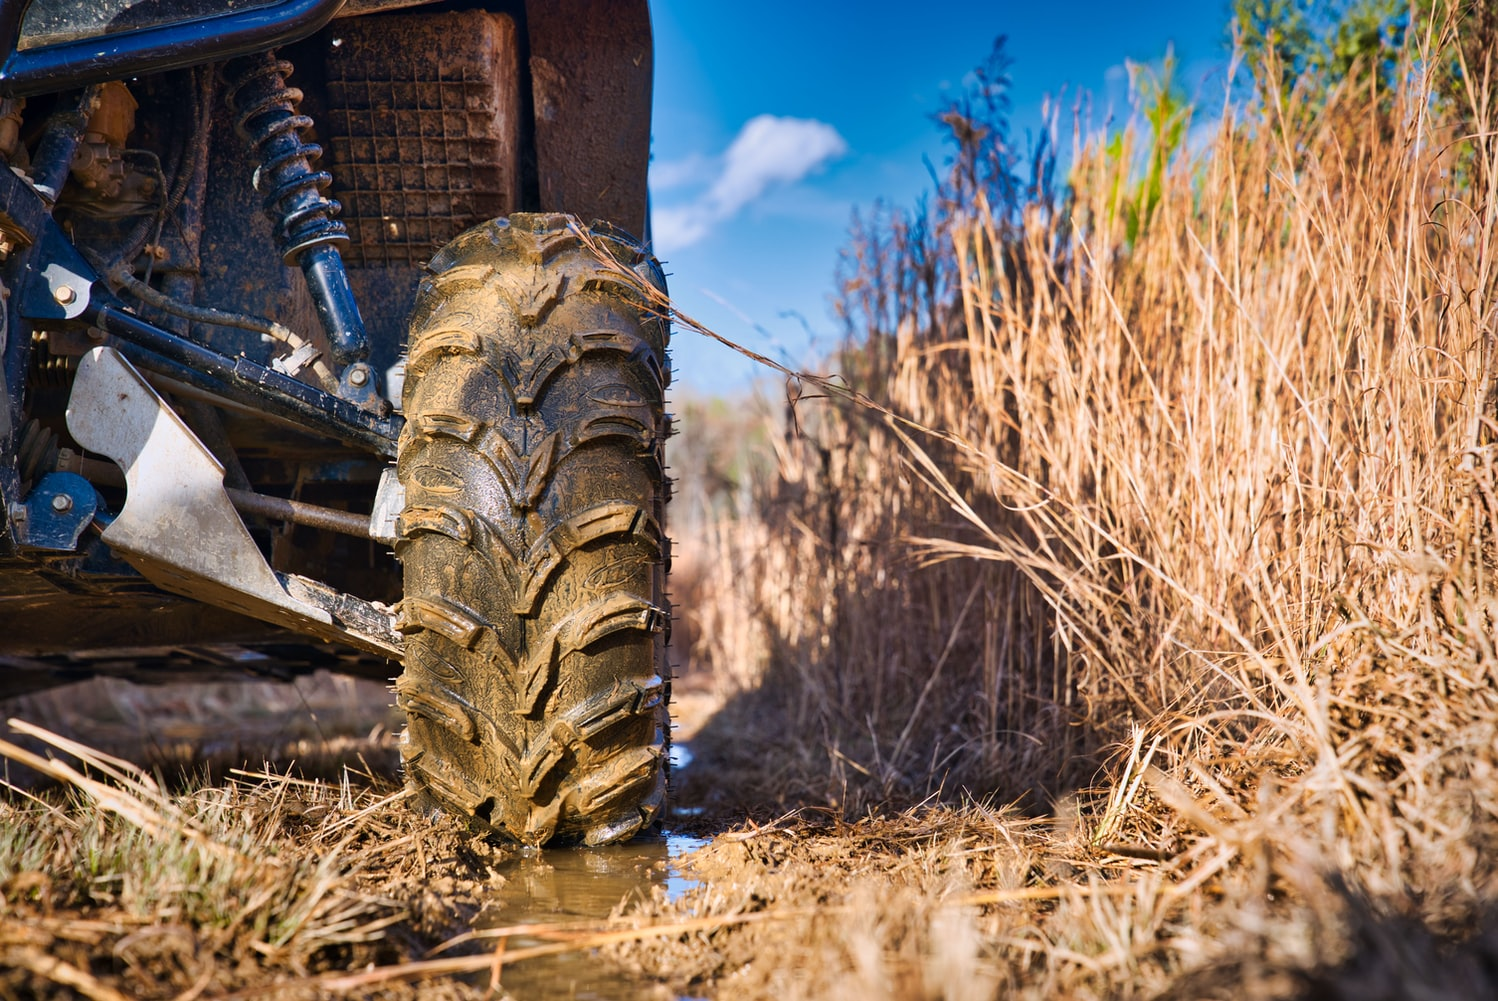 A ground level view of a side-by-side tire on a wet trail in the middle of a year old cut-over.